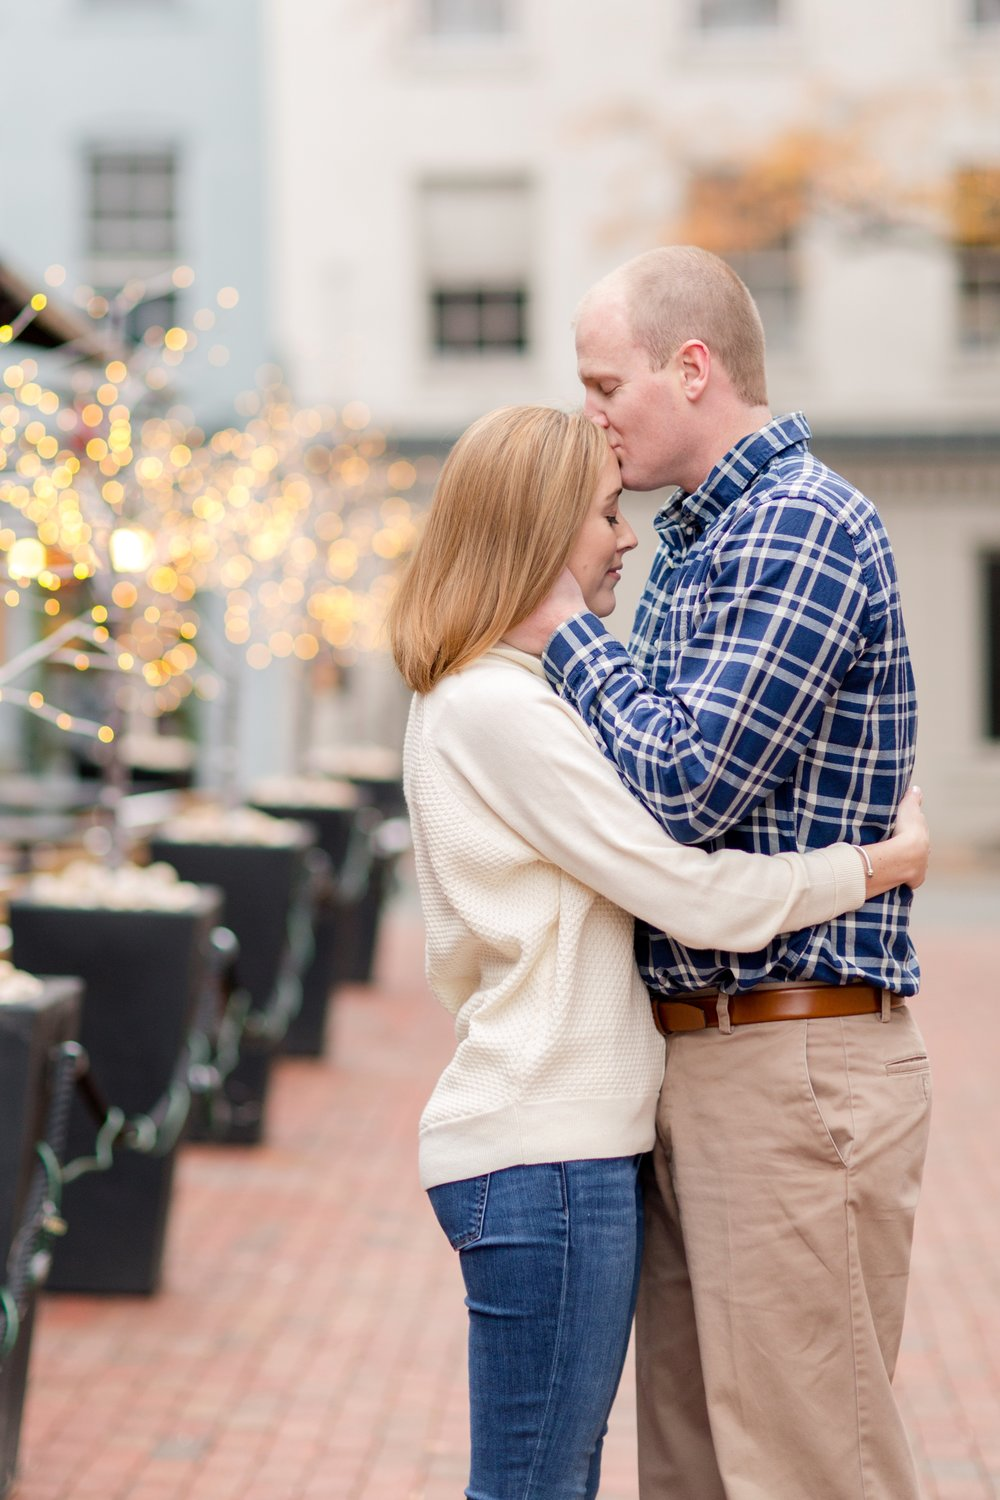 Kristin & Matt Engagement-338_anna grace photography old town alexandria virginia engagement and wedding photographer photo.jpg